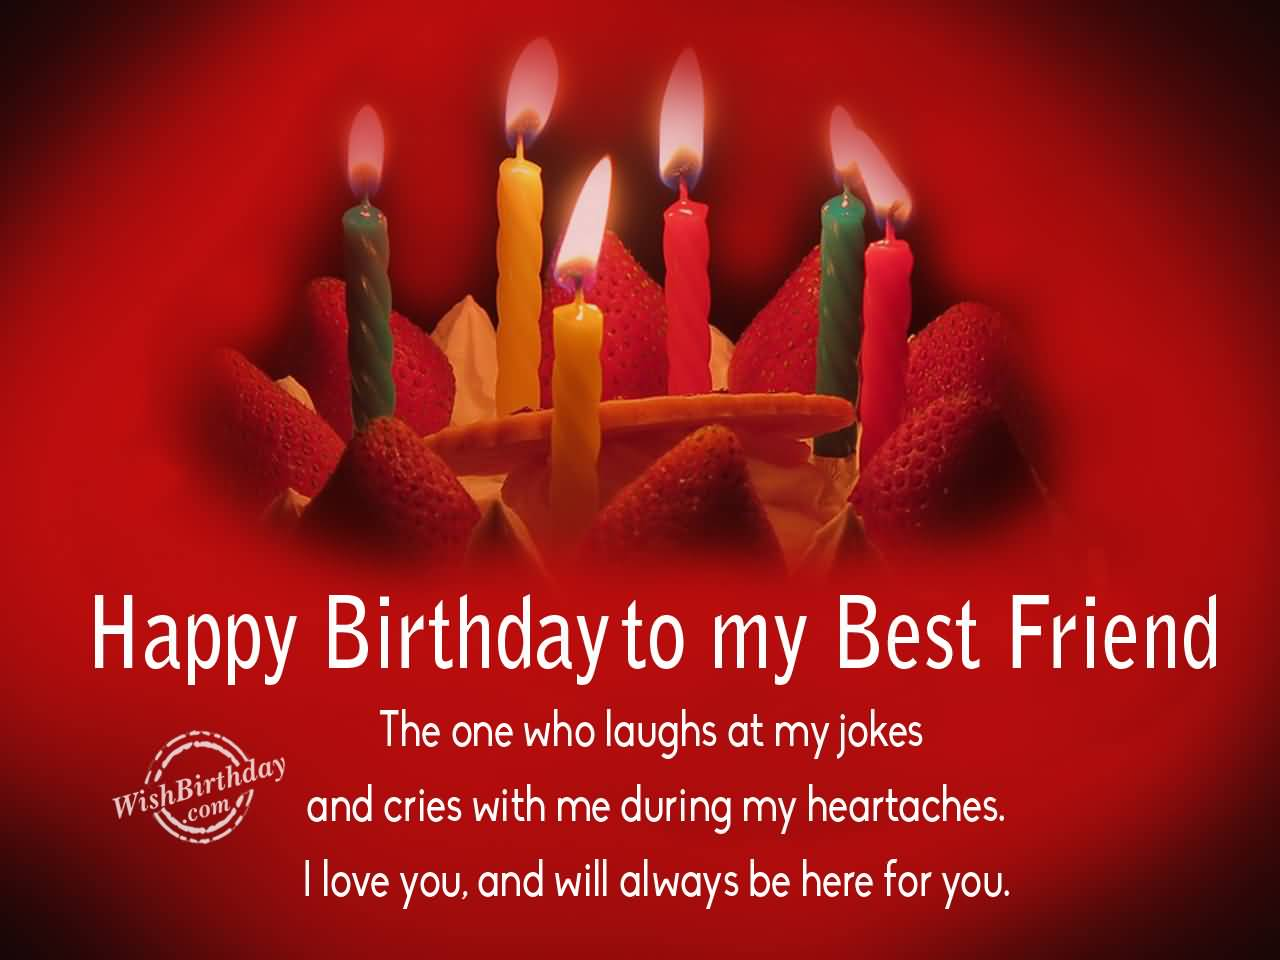 Best Friend Birthday Wishes Page 3 Nicewishes Com Happy Birthday Wishes To My